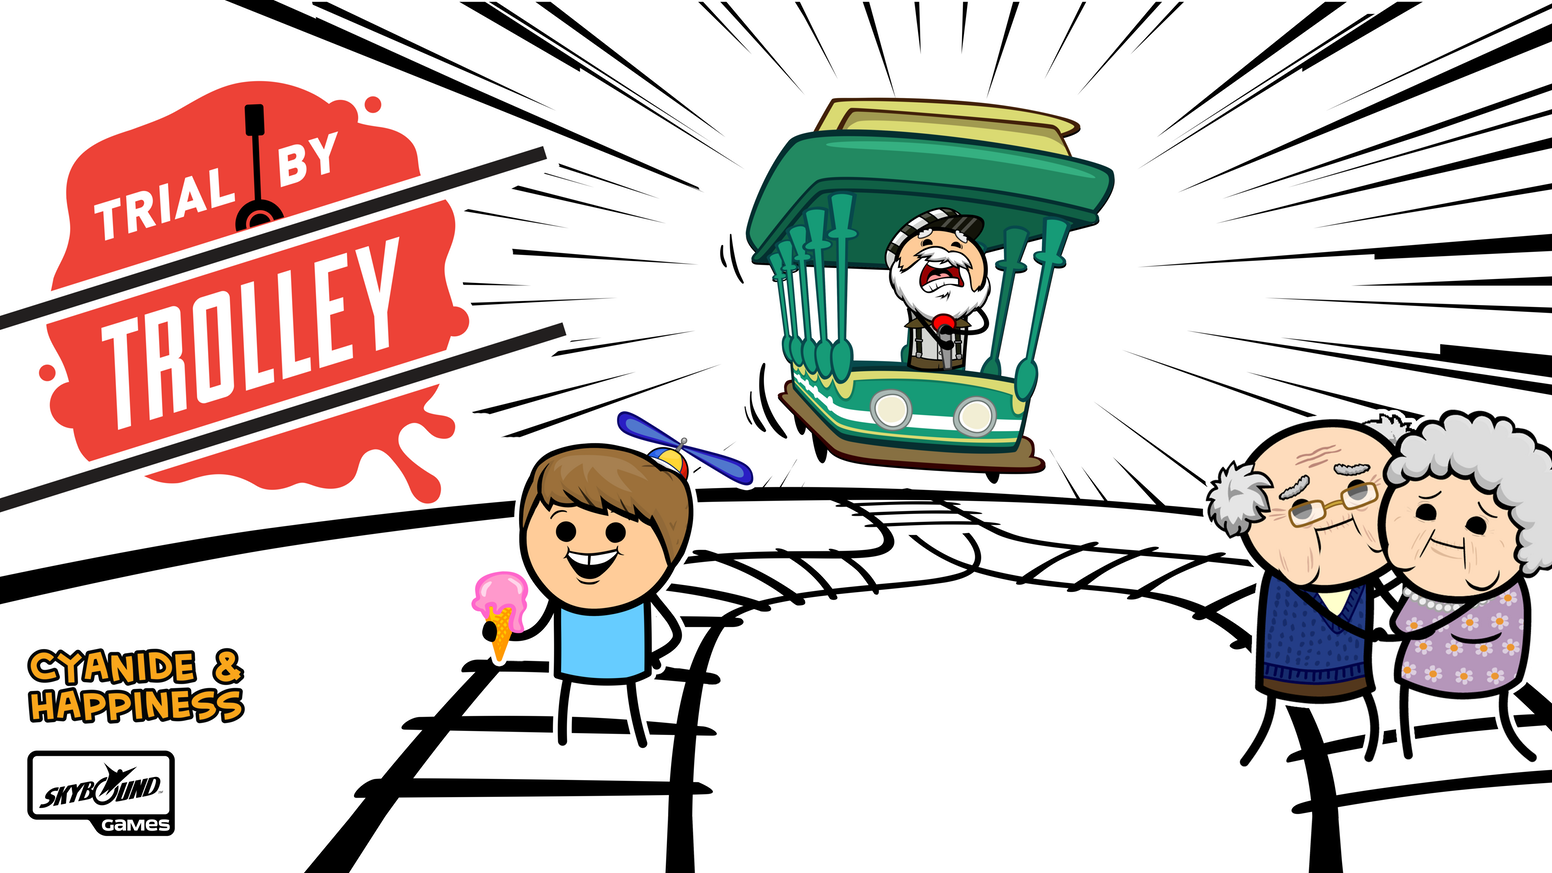 Trial By Trolley by Cyanide And Happiness — Kickstarter.